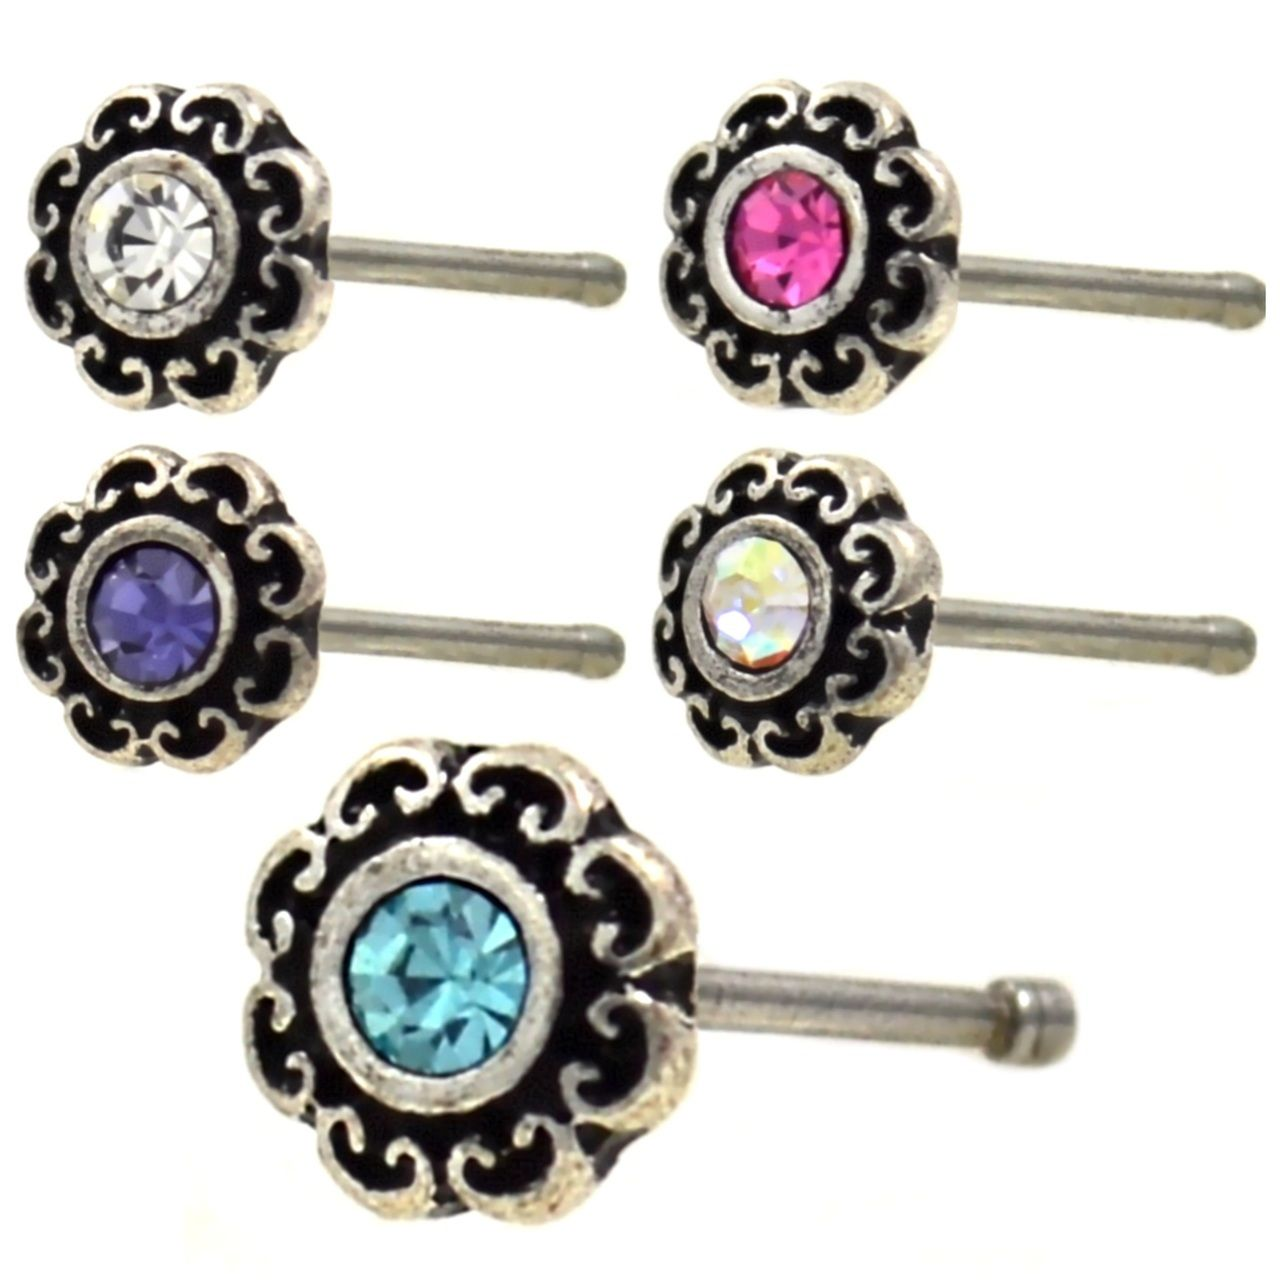 Ball End 316L Surgical Steel 0.8mm Nose Stud Tribal Flower AB CZ  20g